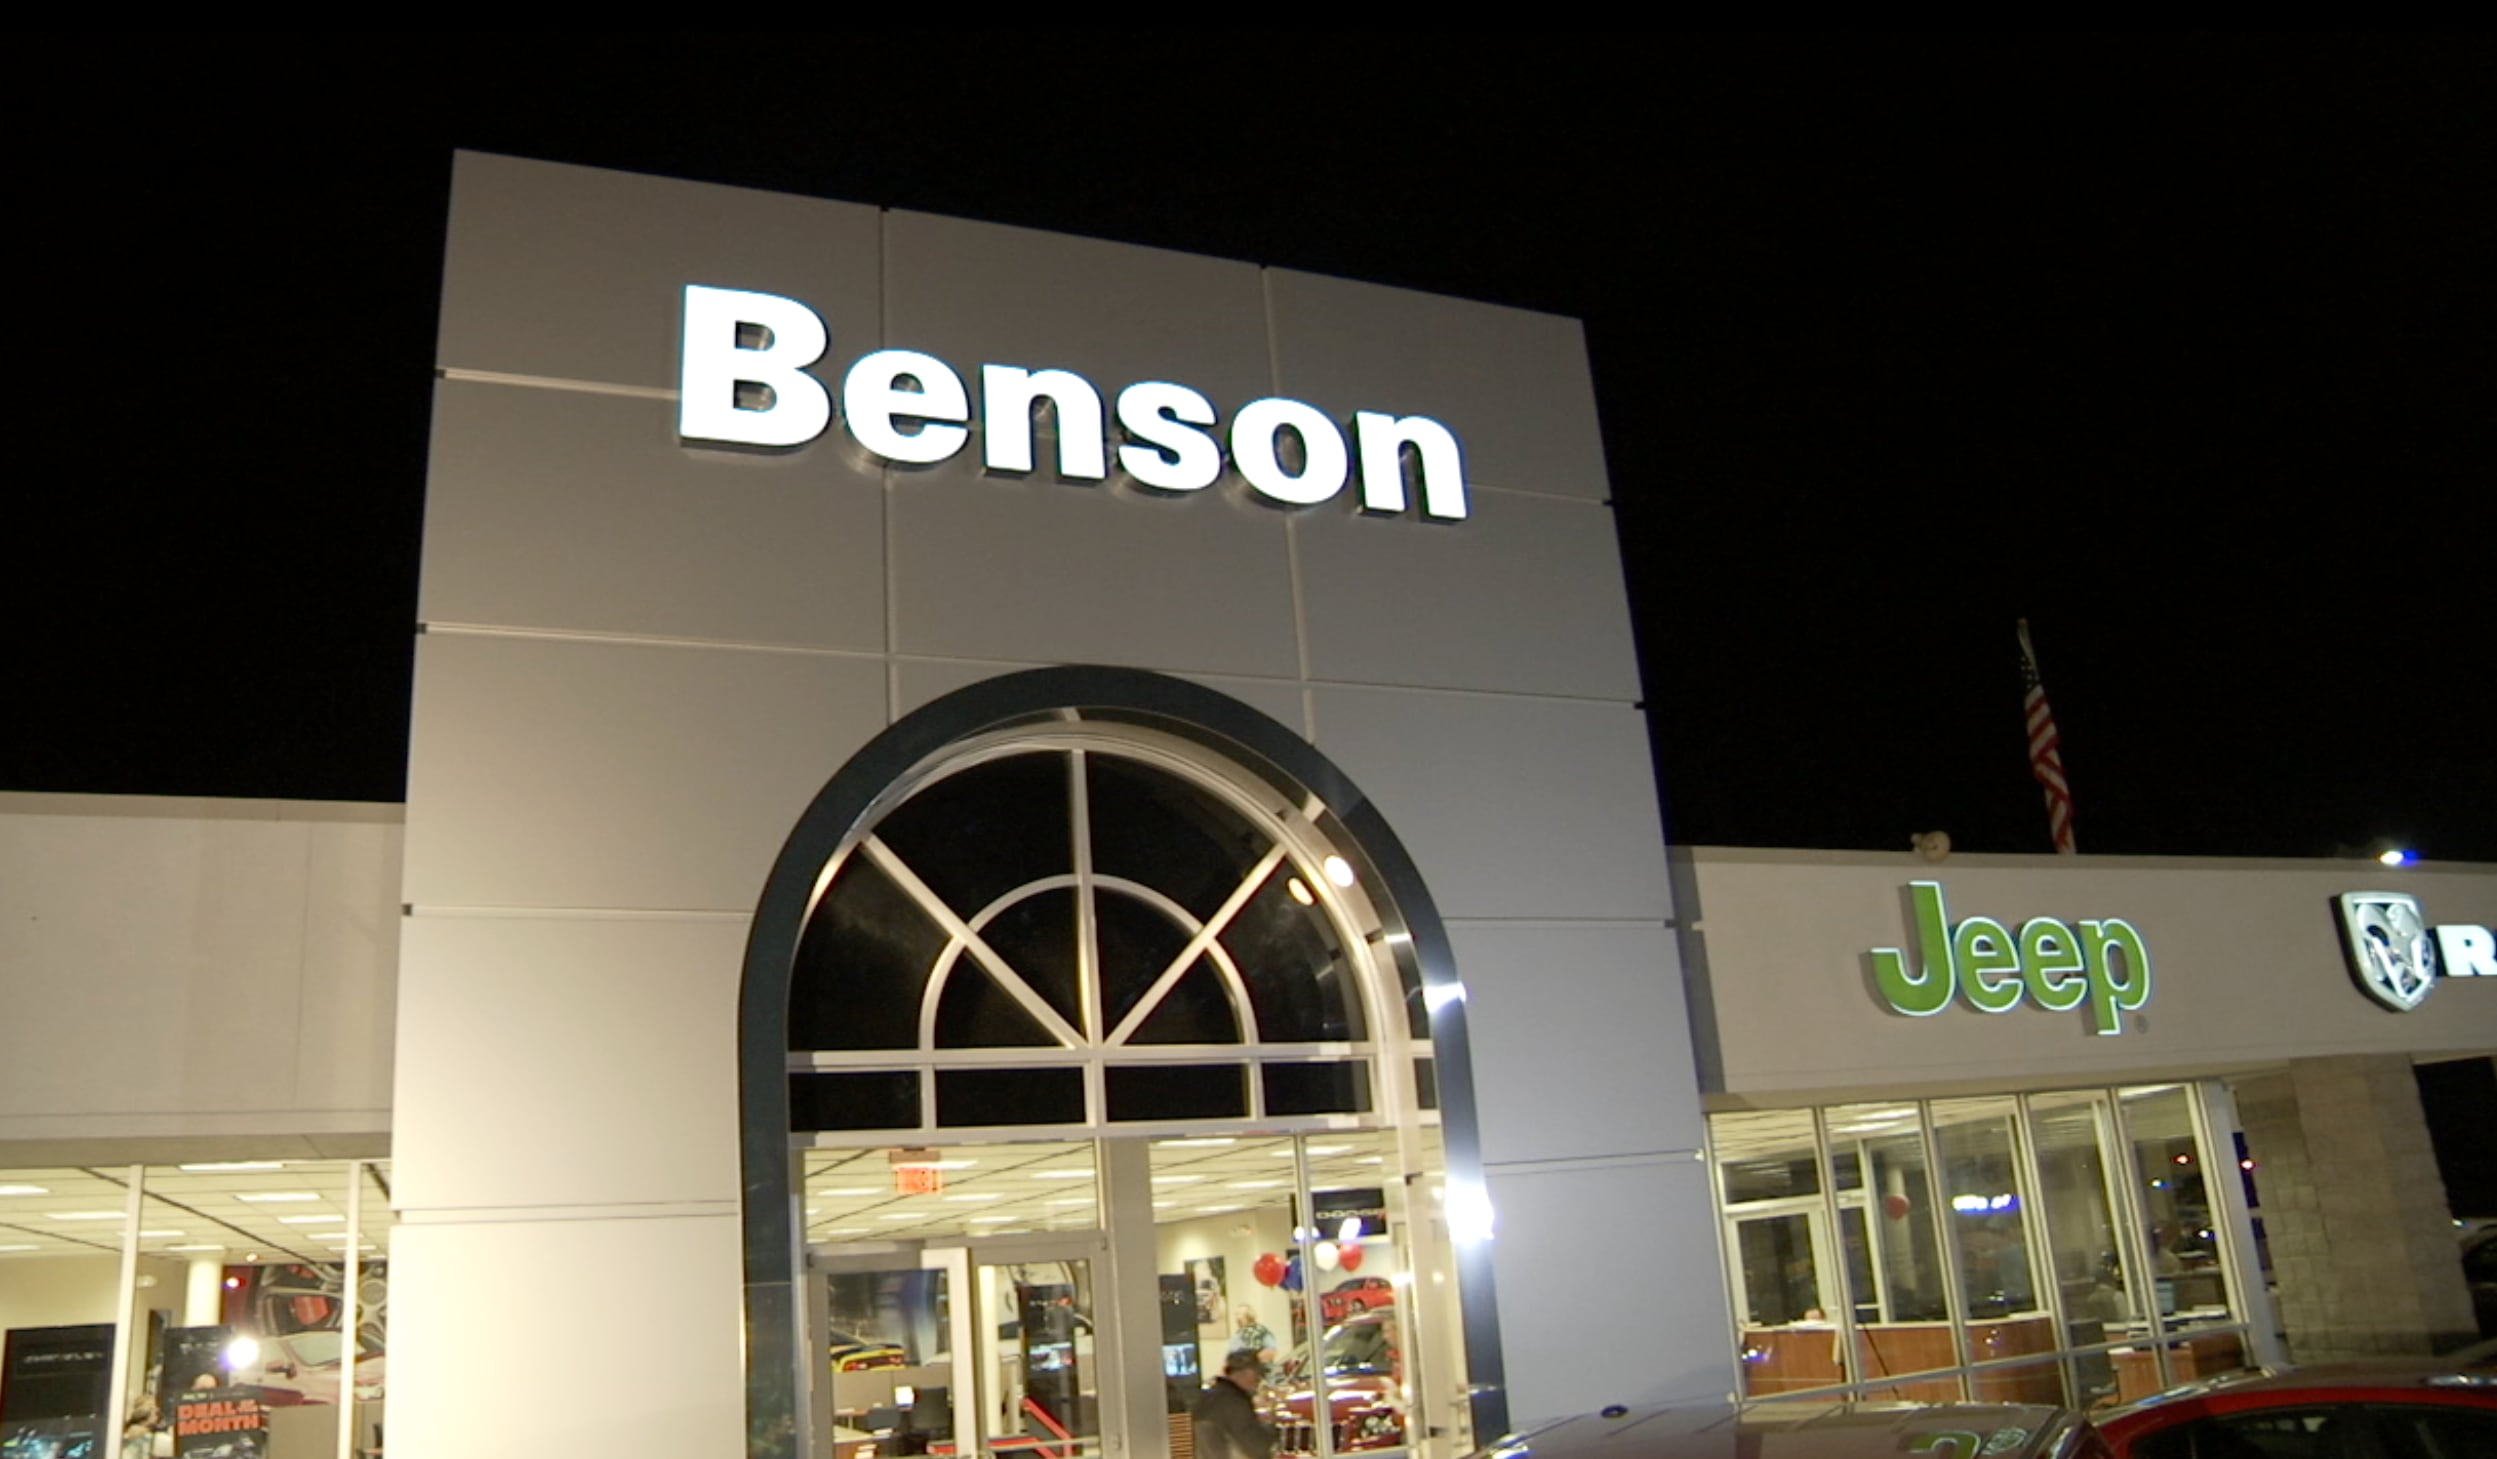 Used Cars Greenville Nc >> About Benson Chrysler Jeep Dodge   New Chrysler Jeep Dodge ...